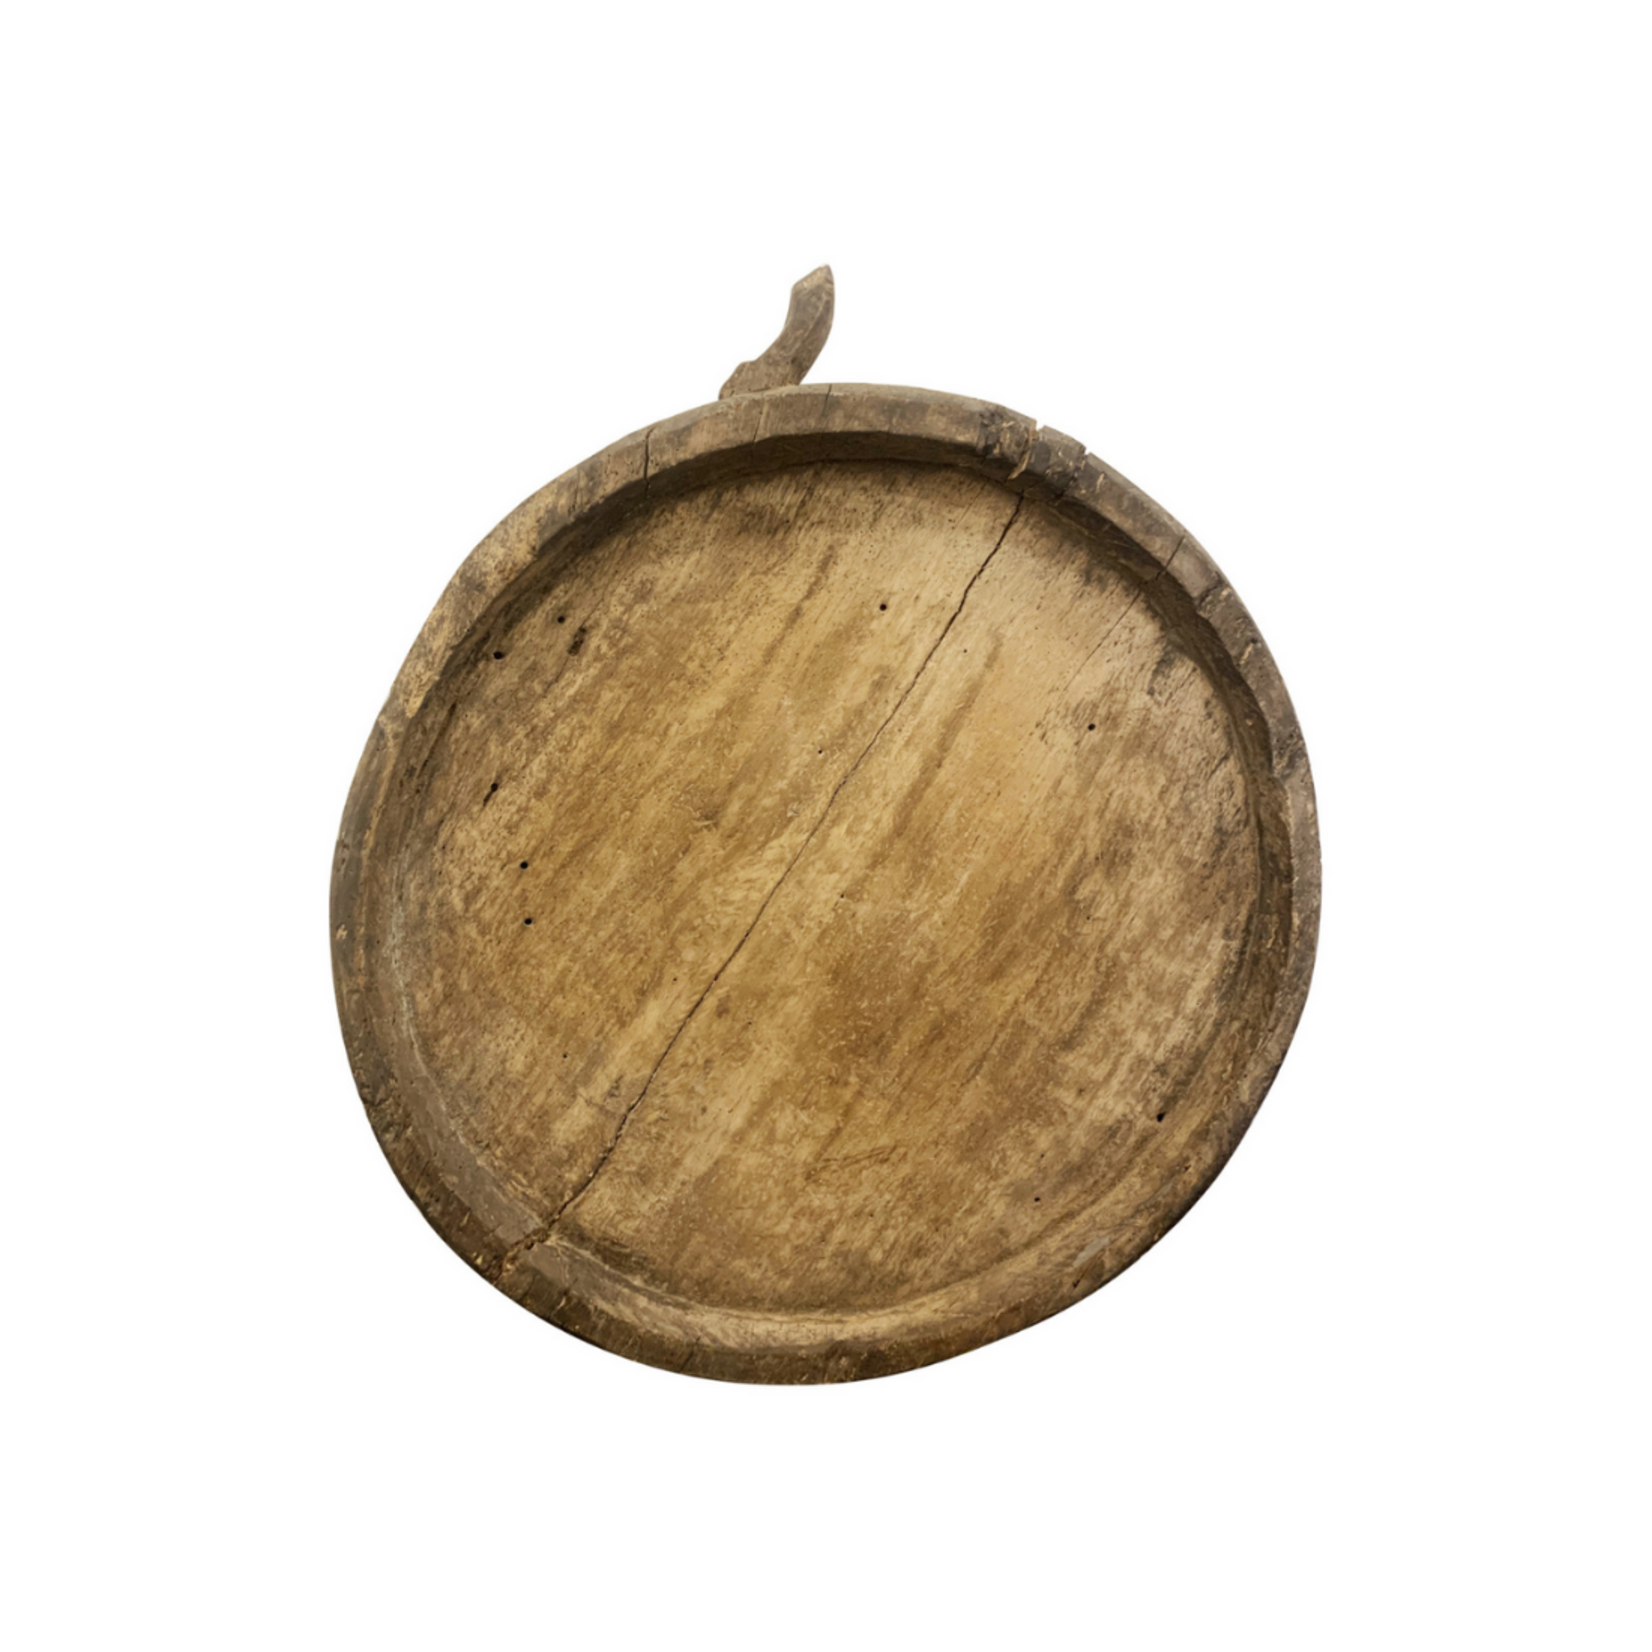 Wyld Blue Home Natural Wood Bowl